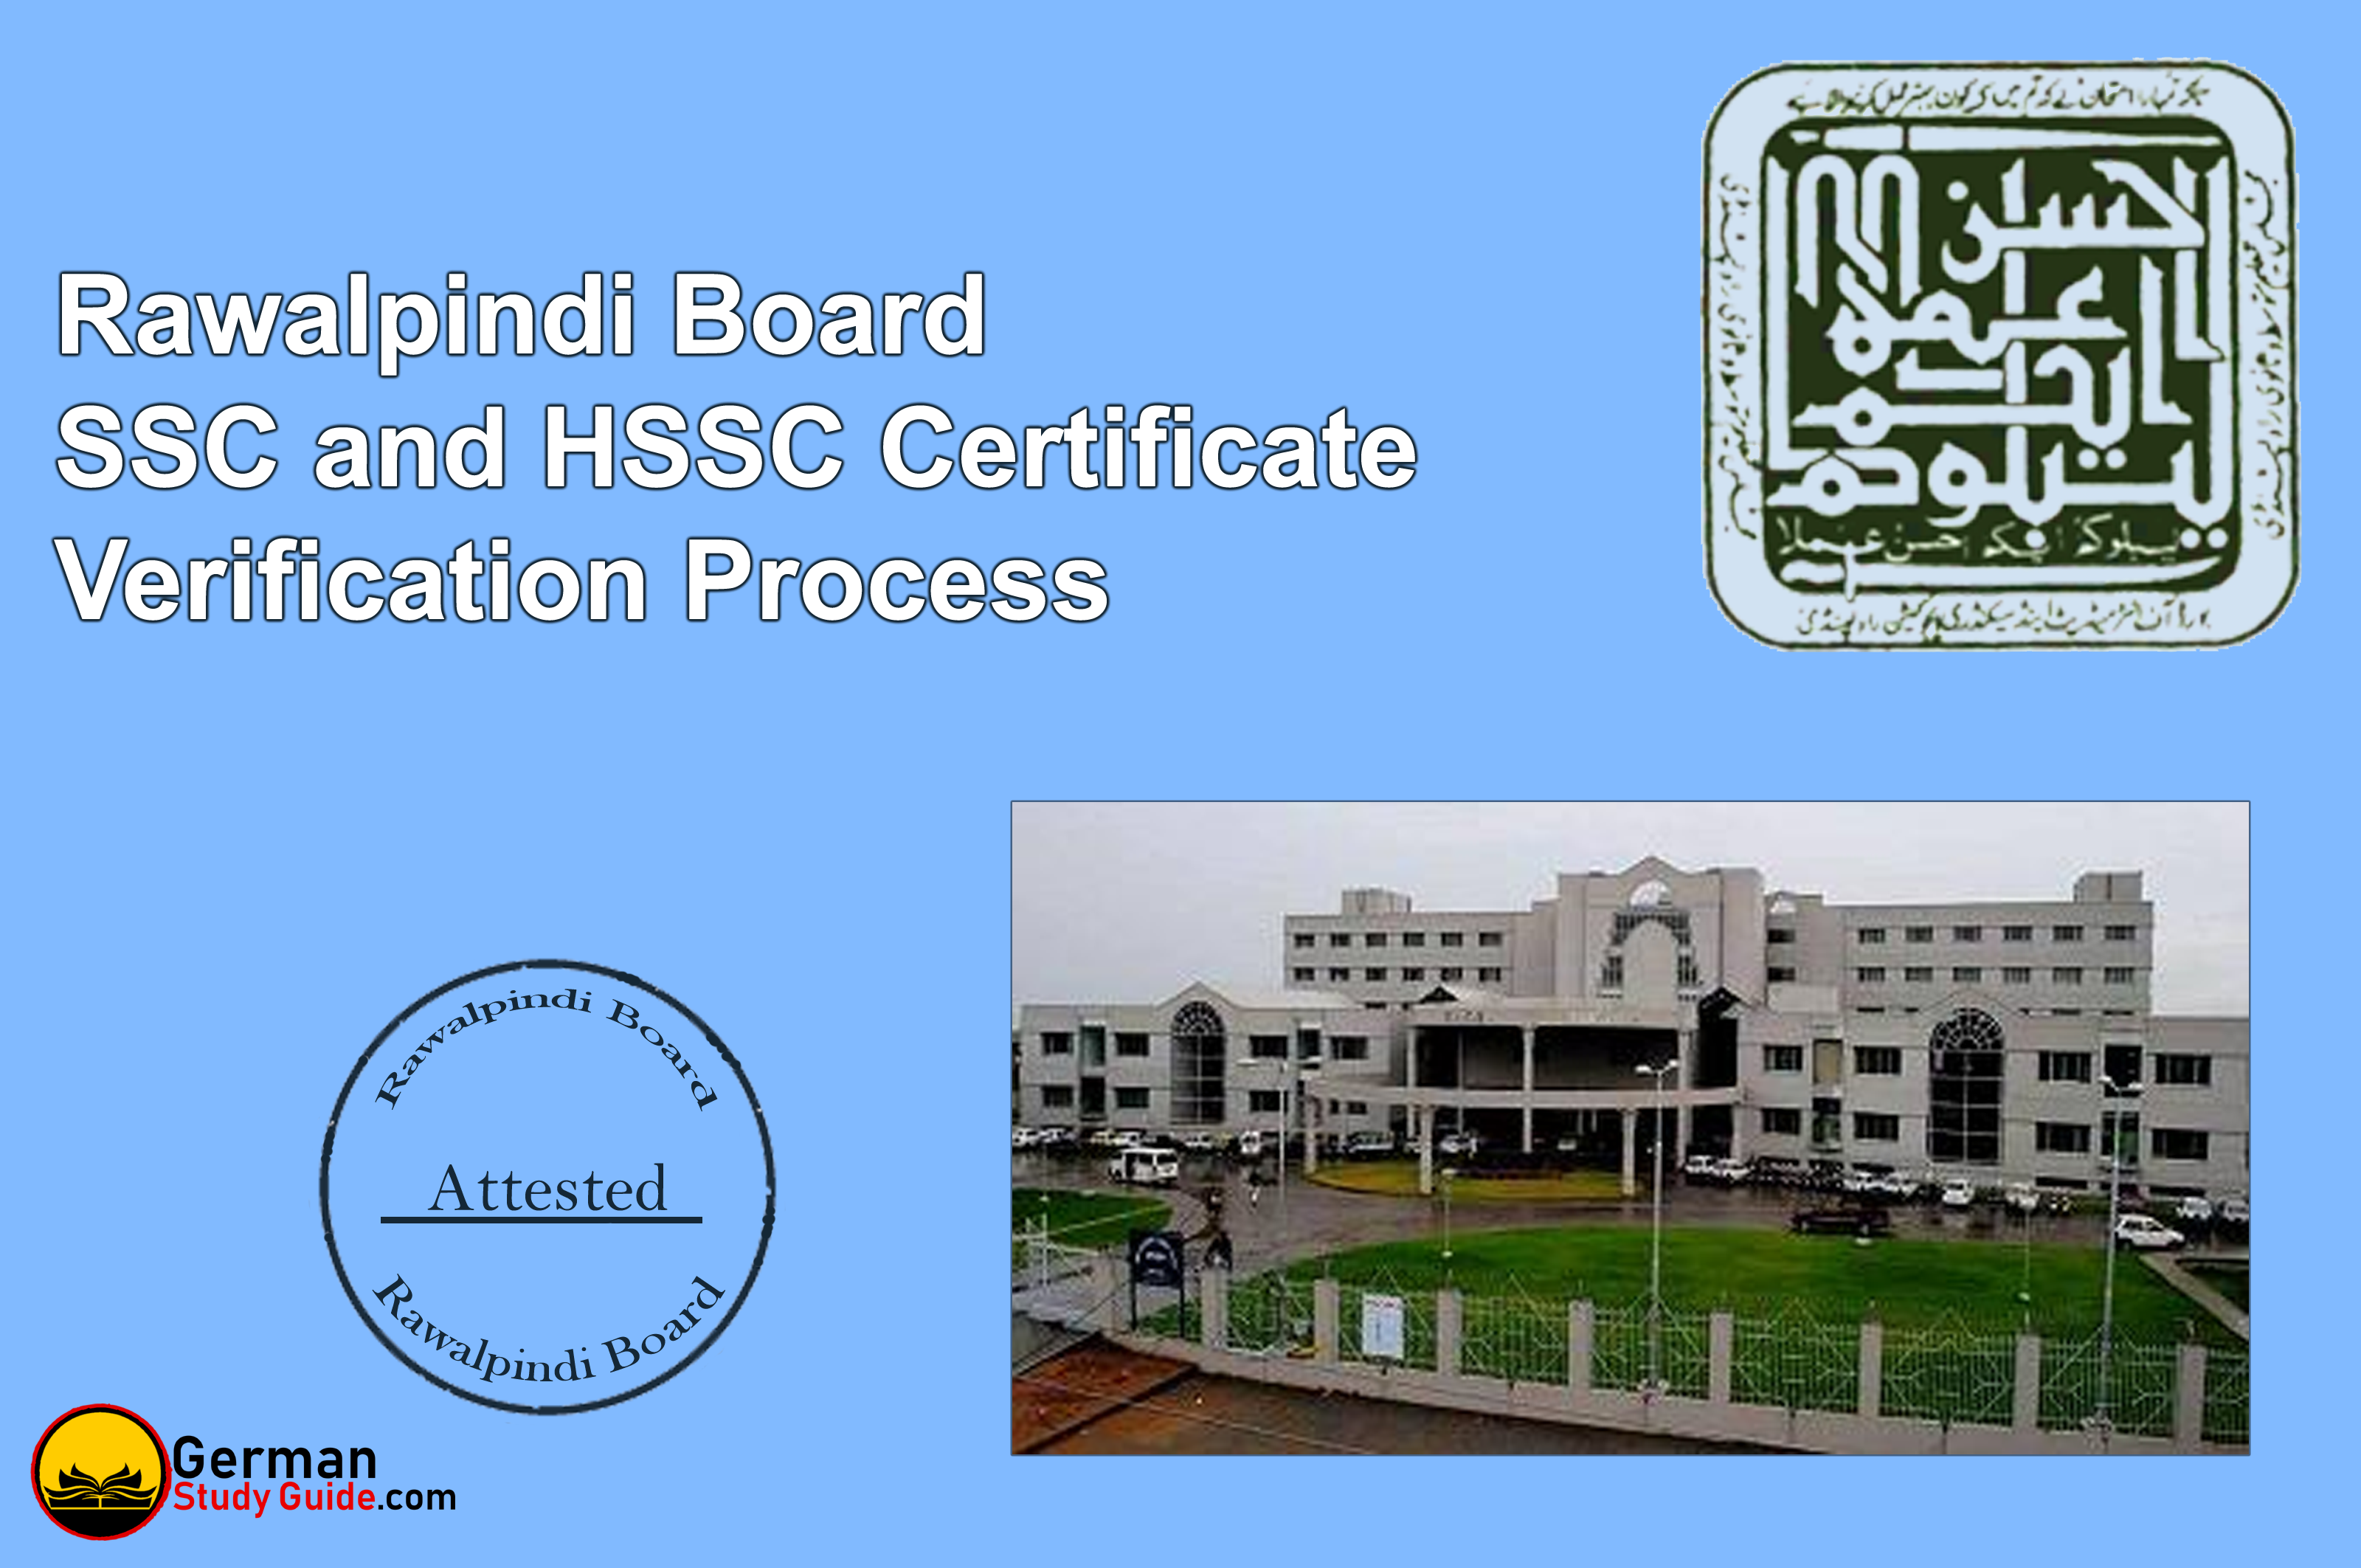 Rawalpindi Board SSC and HSSC certificate verification process